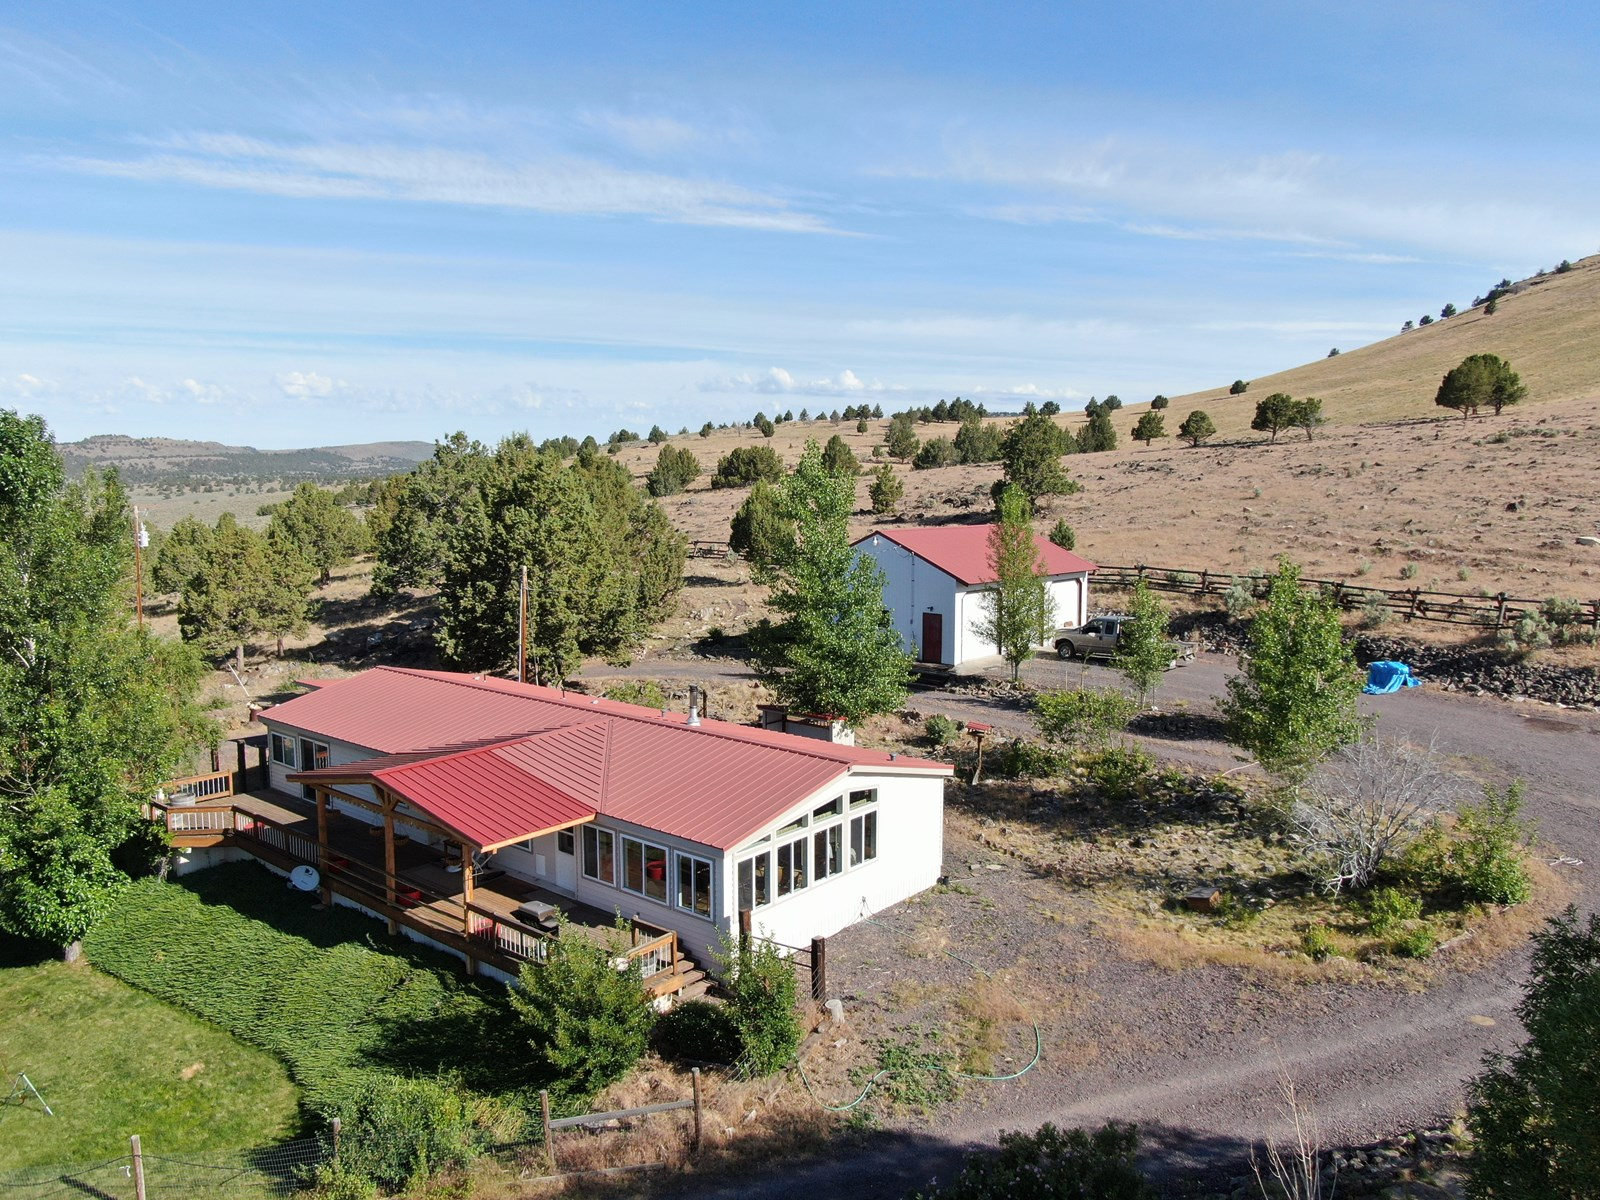 WEST OF BURNS OR - NICE HOME ON 317 ACRES W/ VIEW